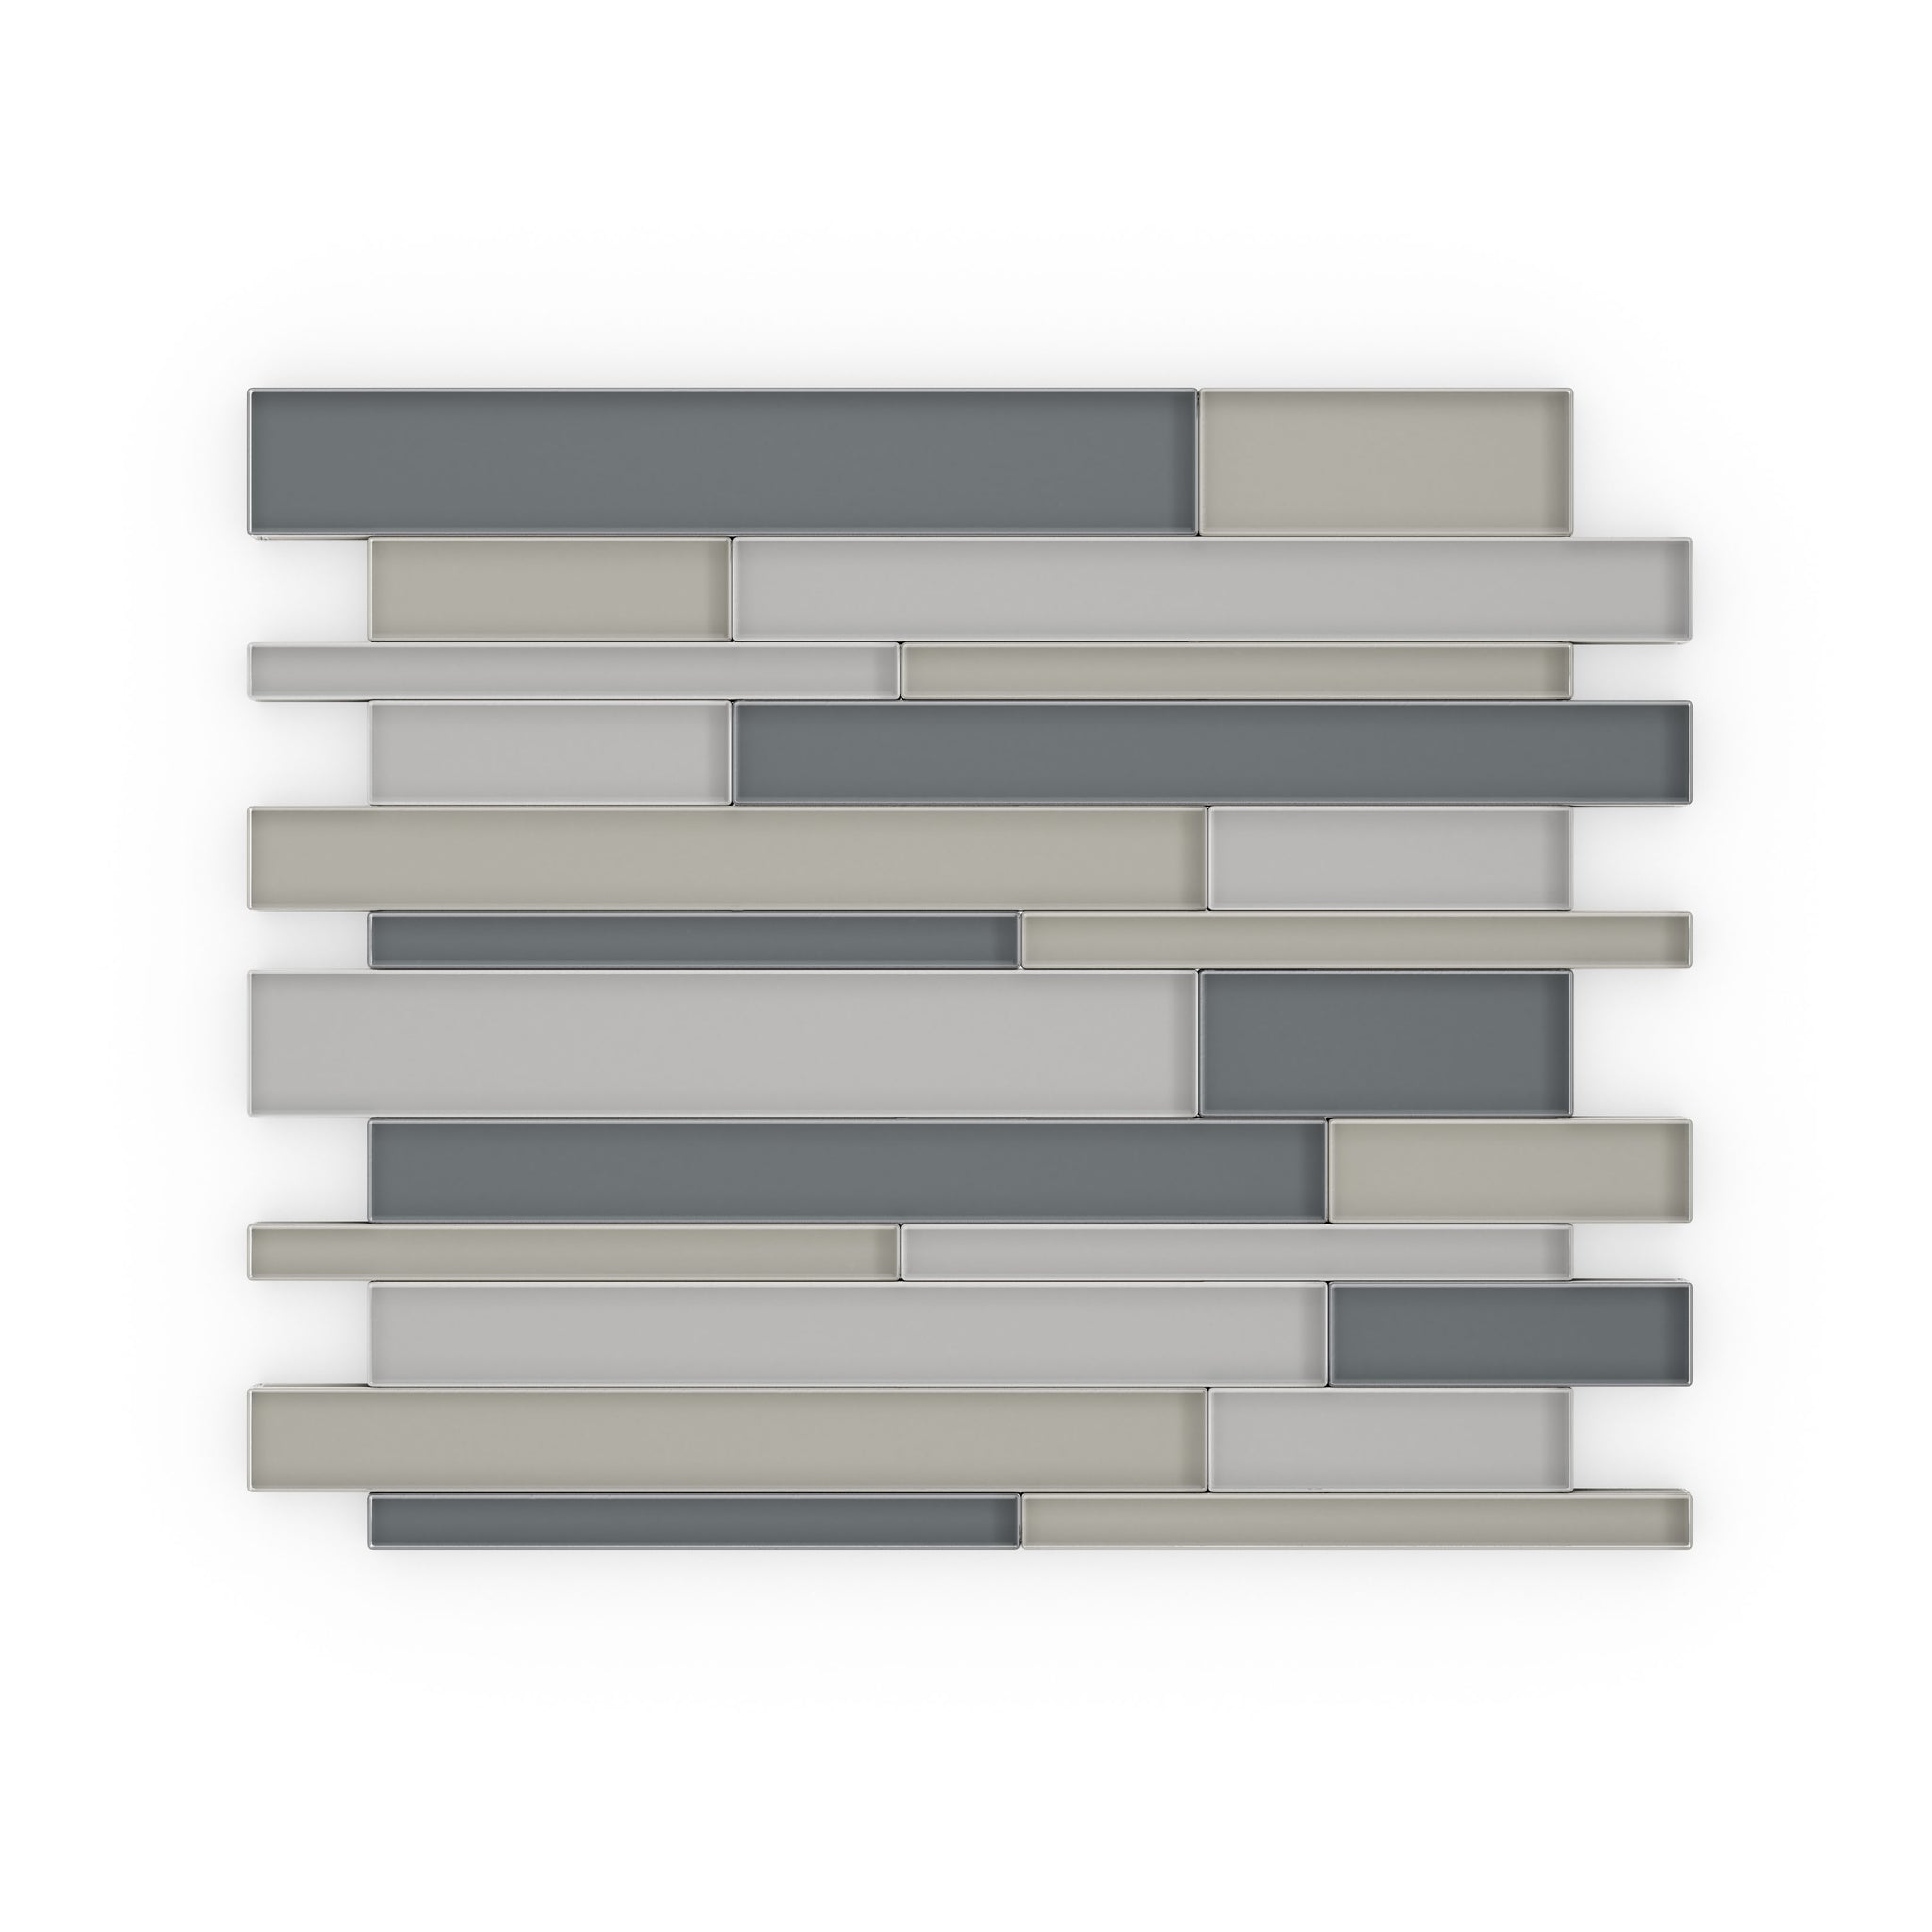 ProntoMosaics Satya Glass Tile